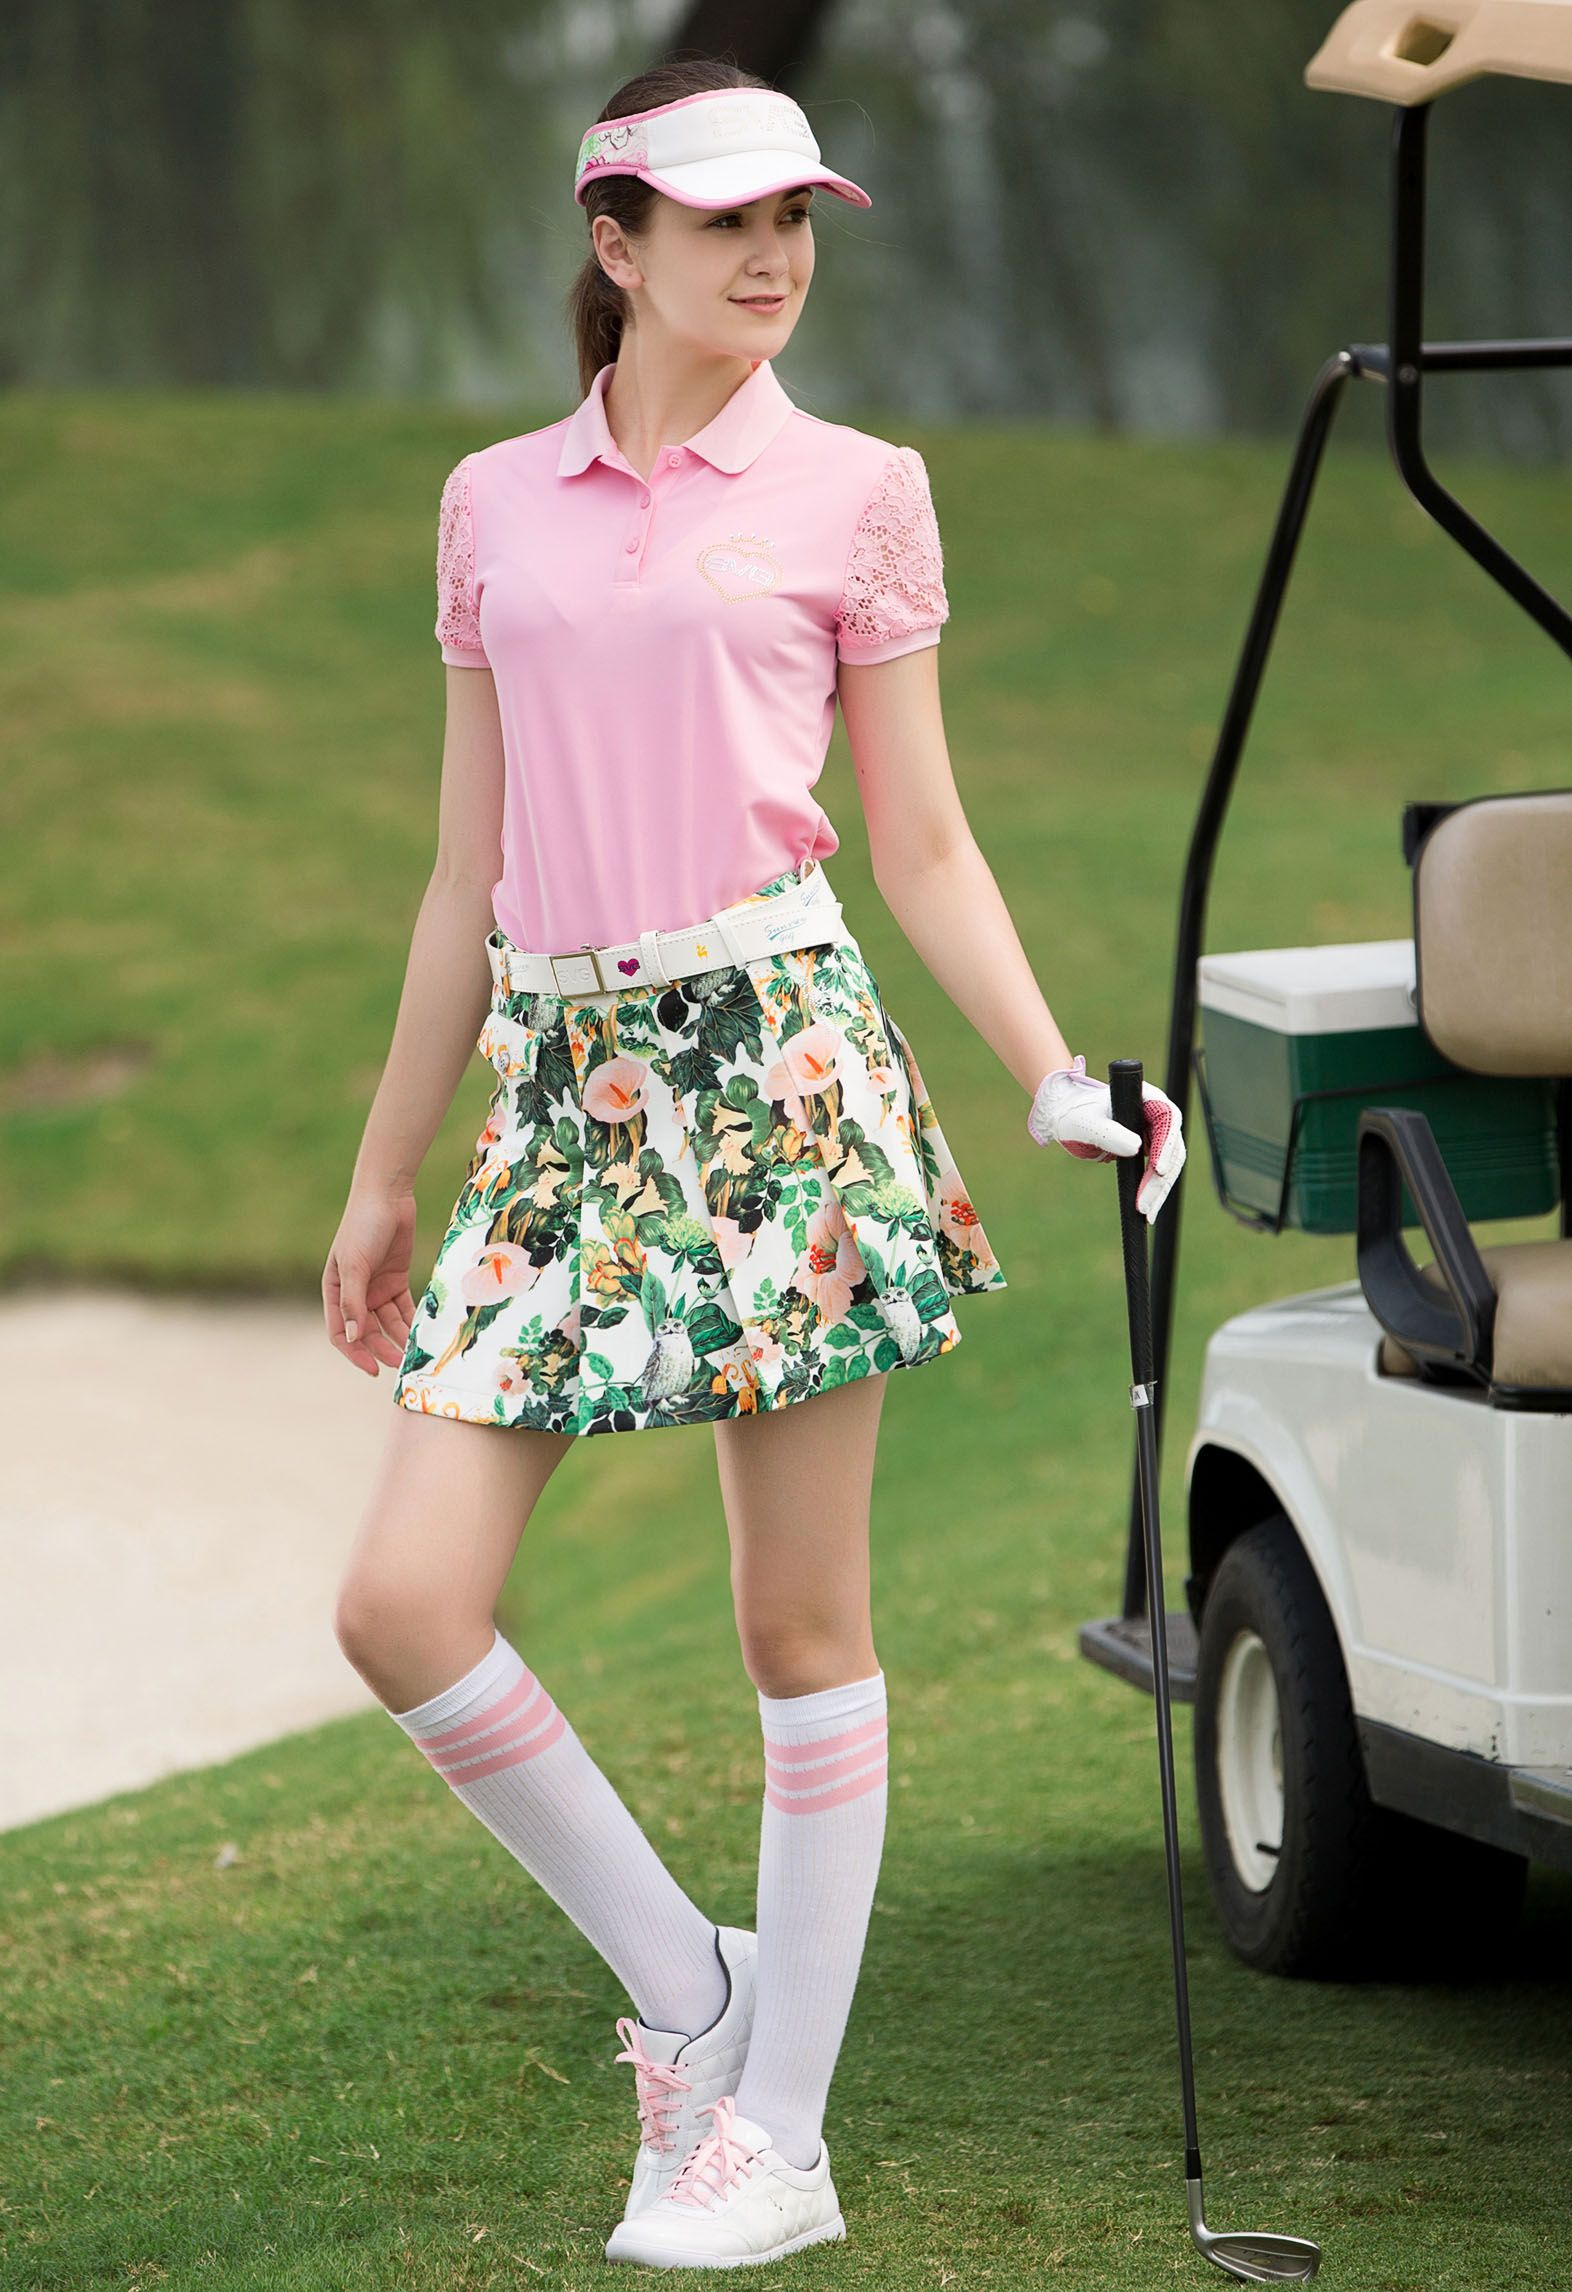 $104, SVG Floral Printed Pleated Women's Athletic Golf Skirt. The all-over  delicated print is sure to turn heads from tee to…   Golf skirts, Fashion, Athletic  women